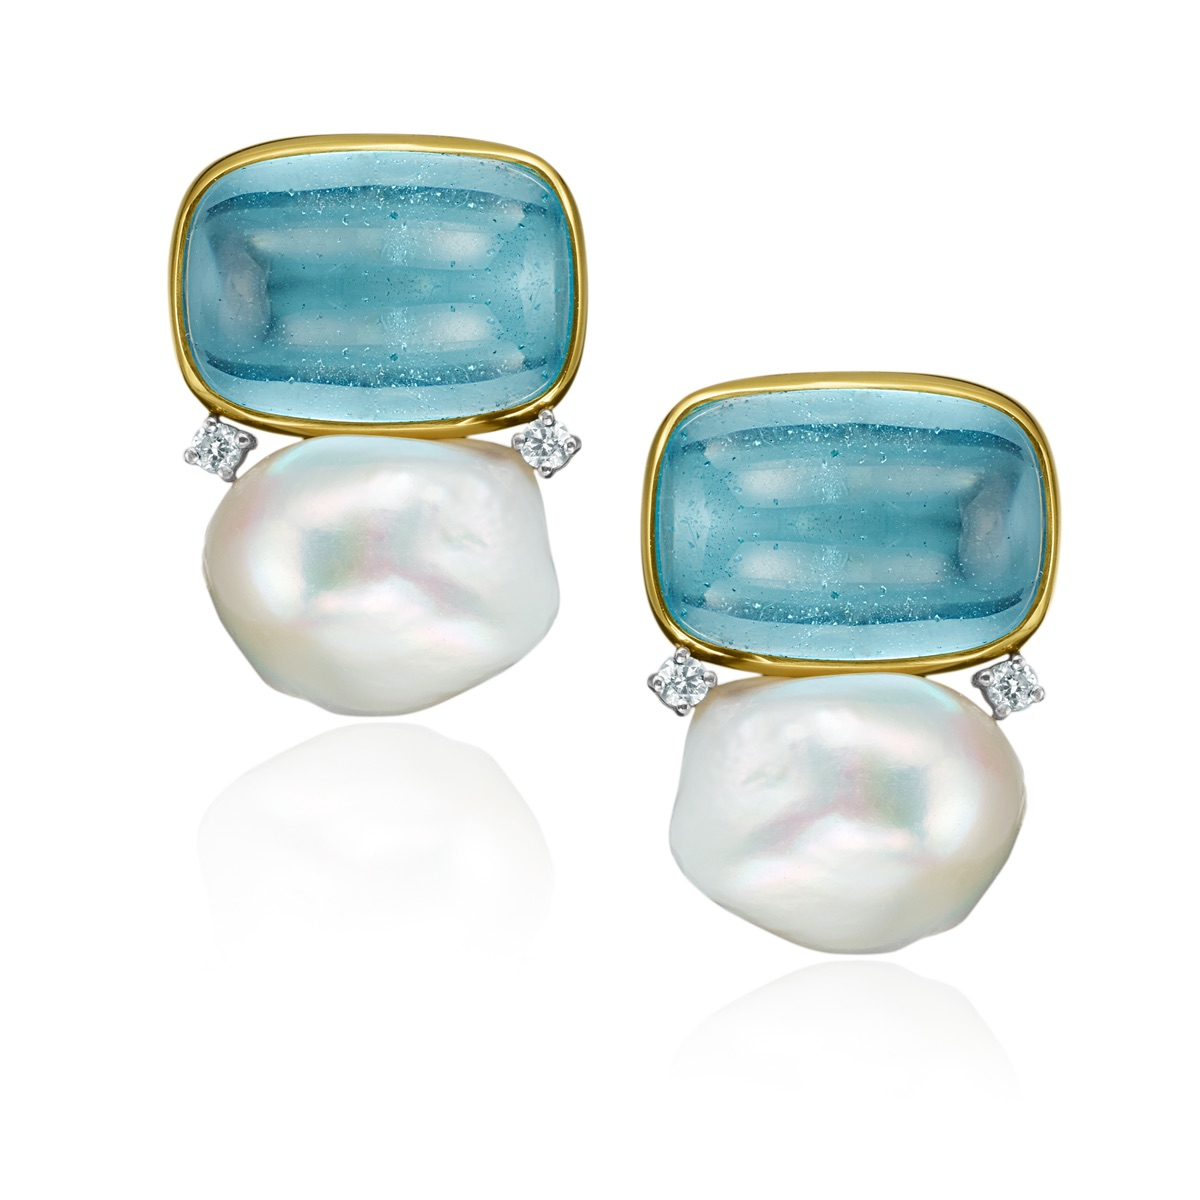 The Jewel - Mazza - Lookbook - Gold, Blue and Pearl Earrings